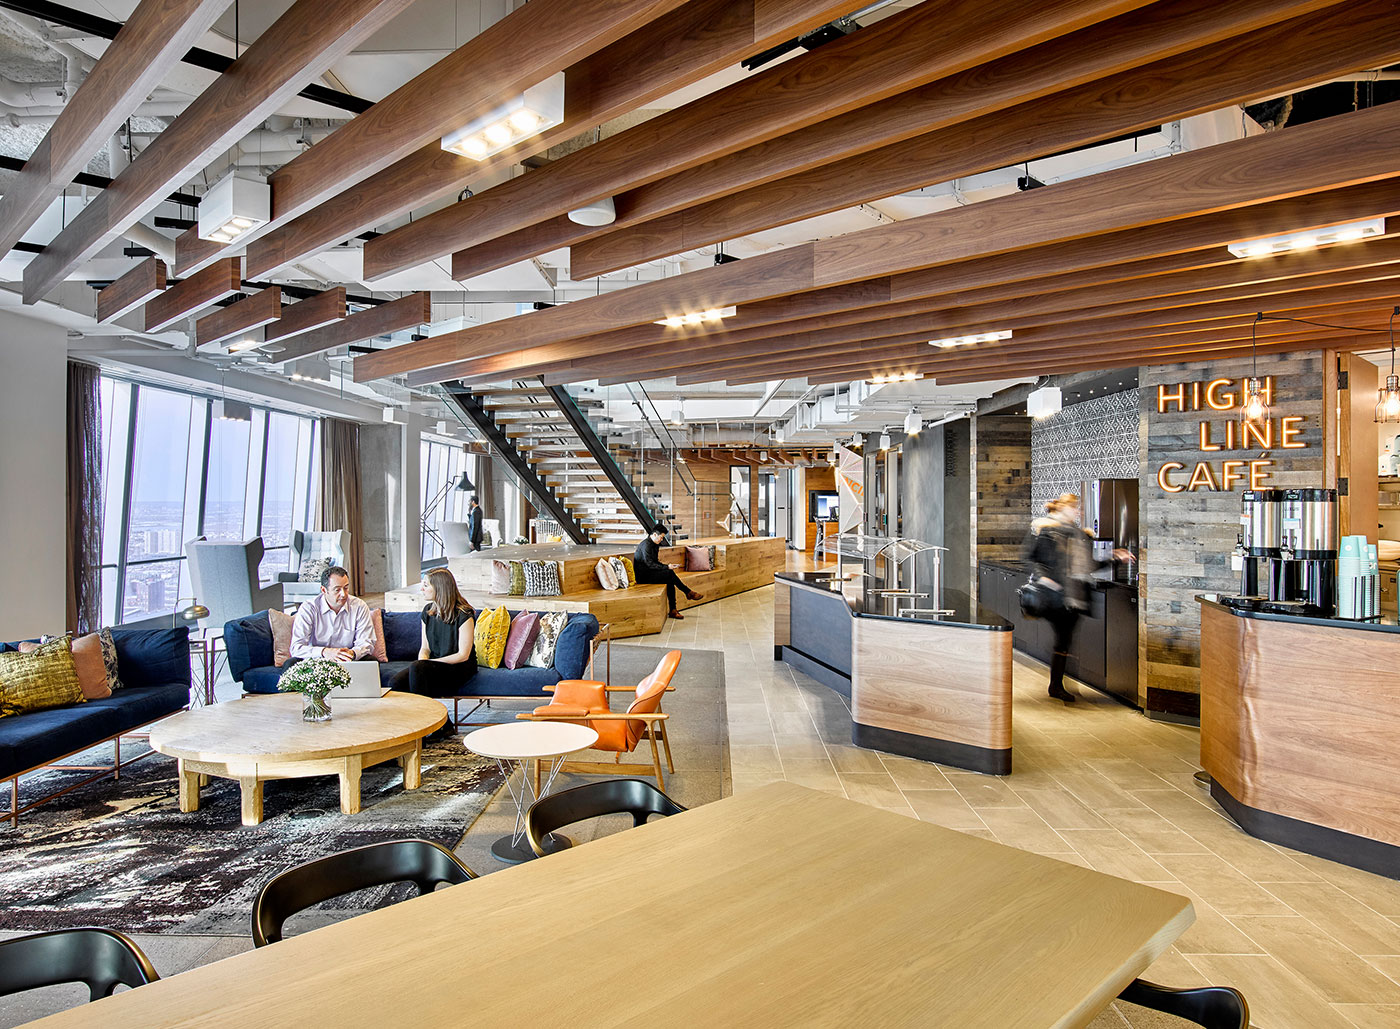 <strong>THE BOSTON CONSULTING GROUP: NEW YORK CITY |</strong> Designed to maximize employee interaction, the Hudson Yards space boasts seating arrangements complete with furniture by trendy designers like Stephen Kenn